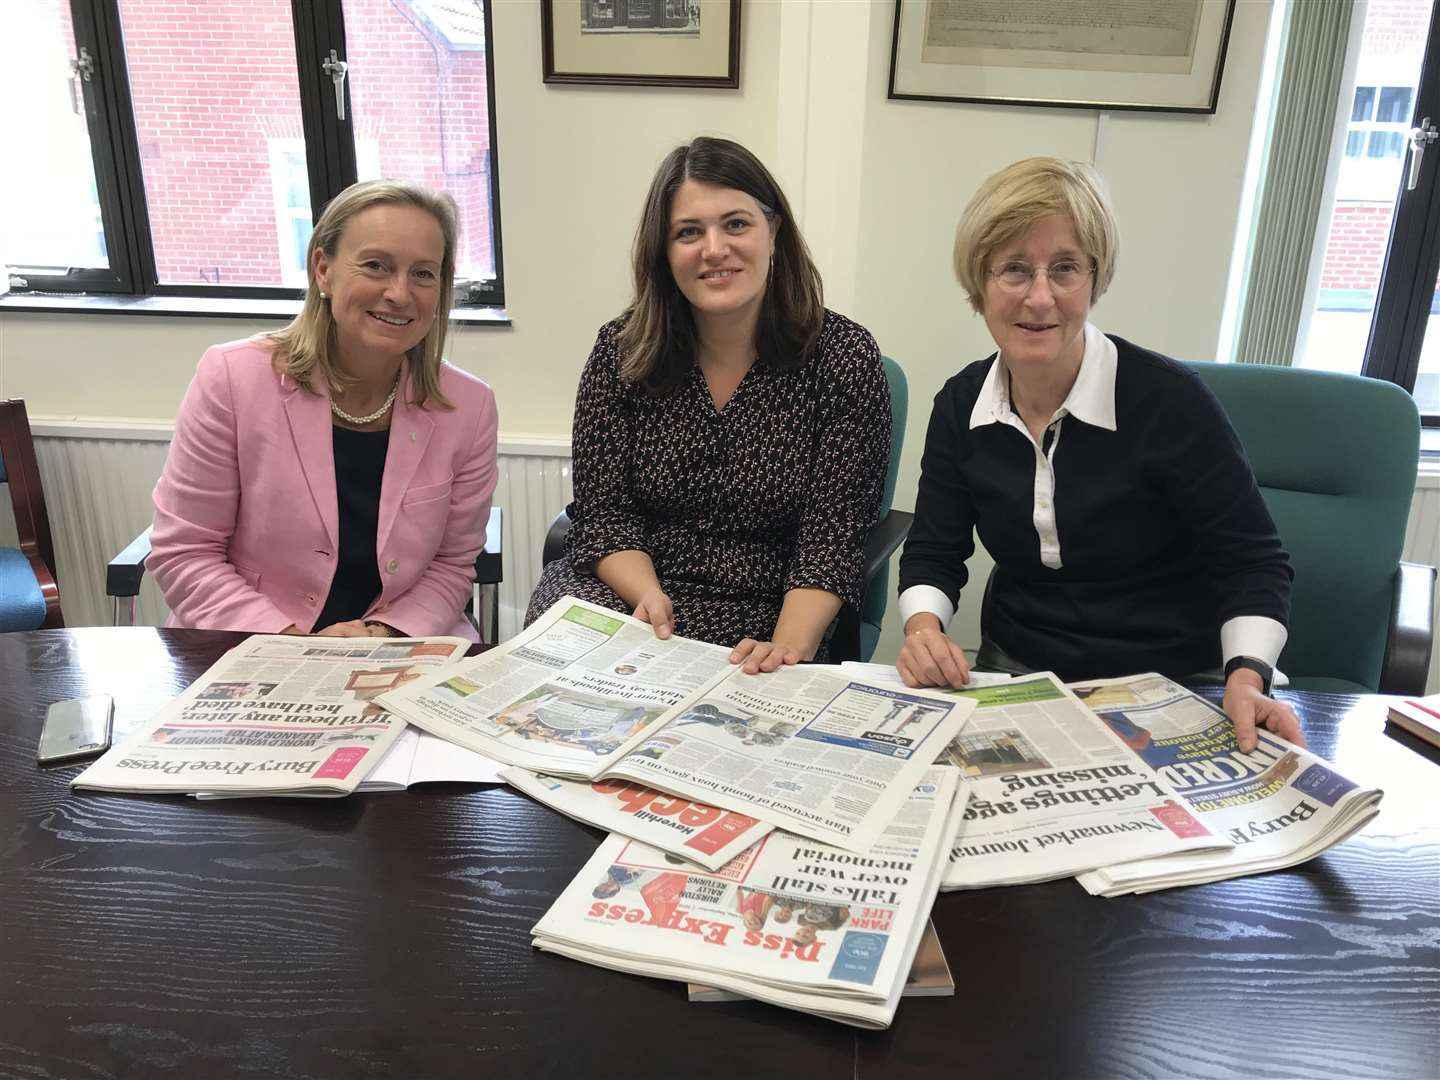 Geraldine Allinson, KM Group chairman, Polly Curtis, editor-in-chief HuffPostUK and Dame Frances Cairncross (4099615)